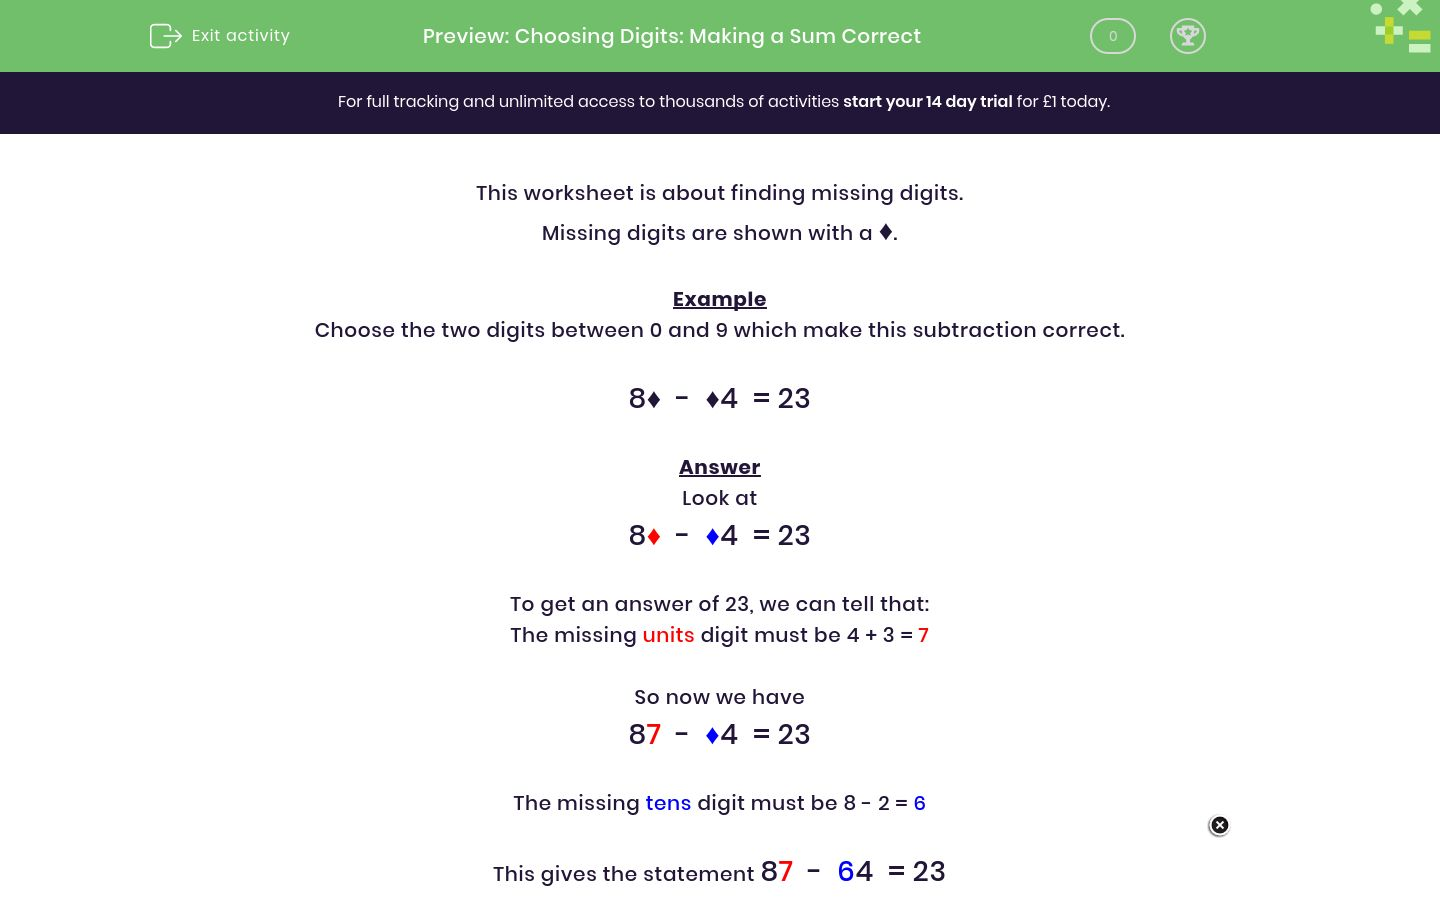 'Choosing Digits: Making a Sum Correct' worksheet